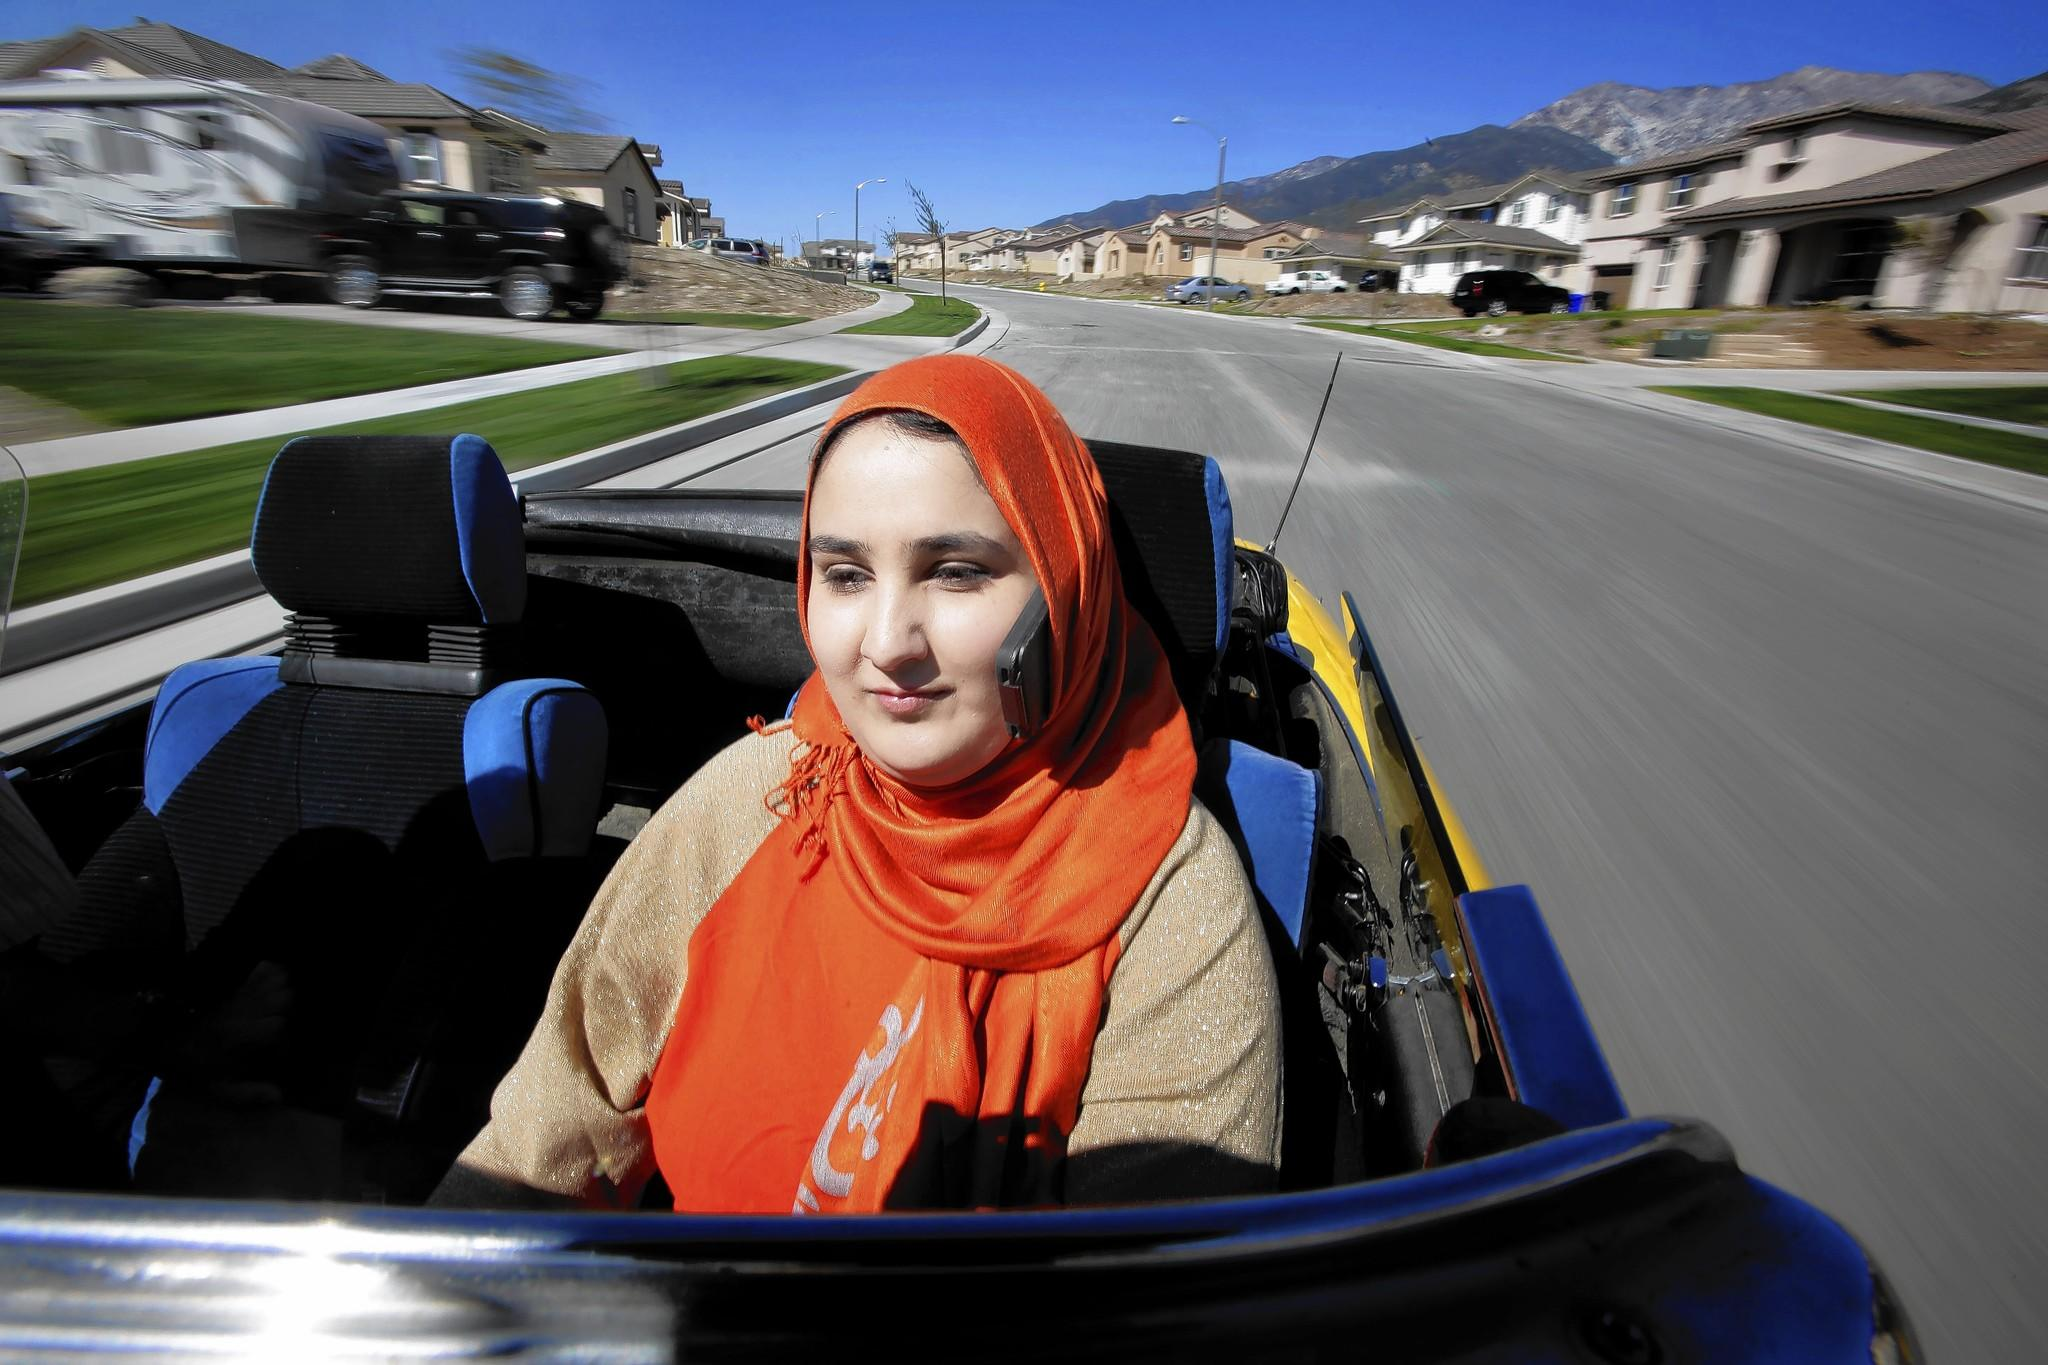 Lena Khan was given a traffic ticket in Glendale for talking on her cellphone, which was tucked into her head scarf, while driving. She's fighting it.